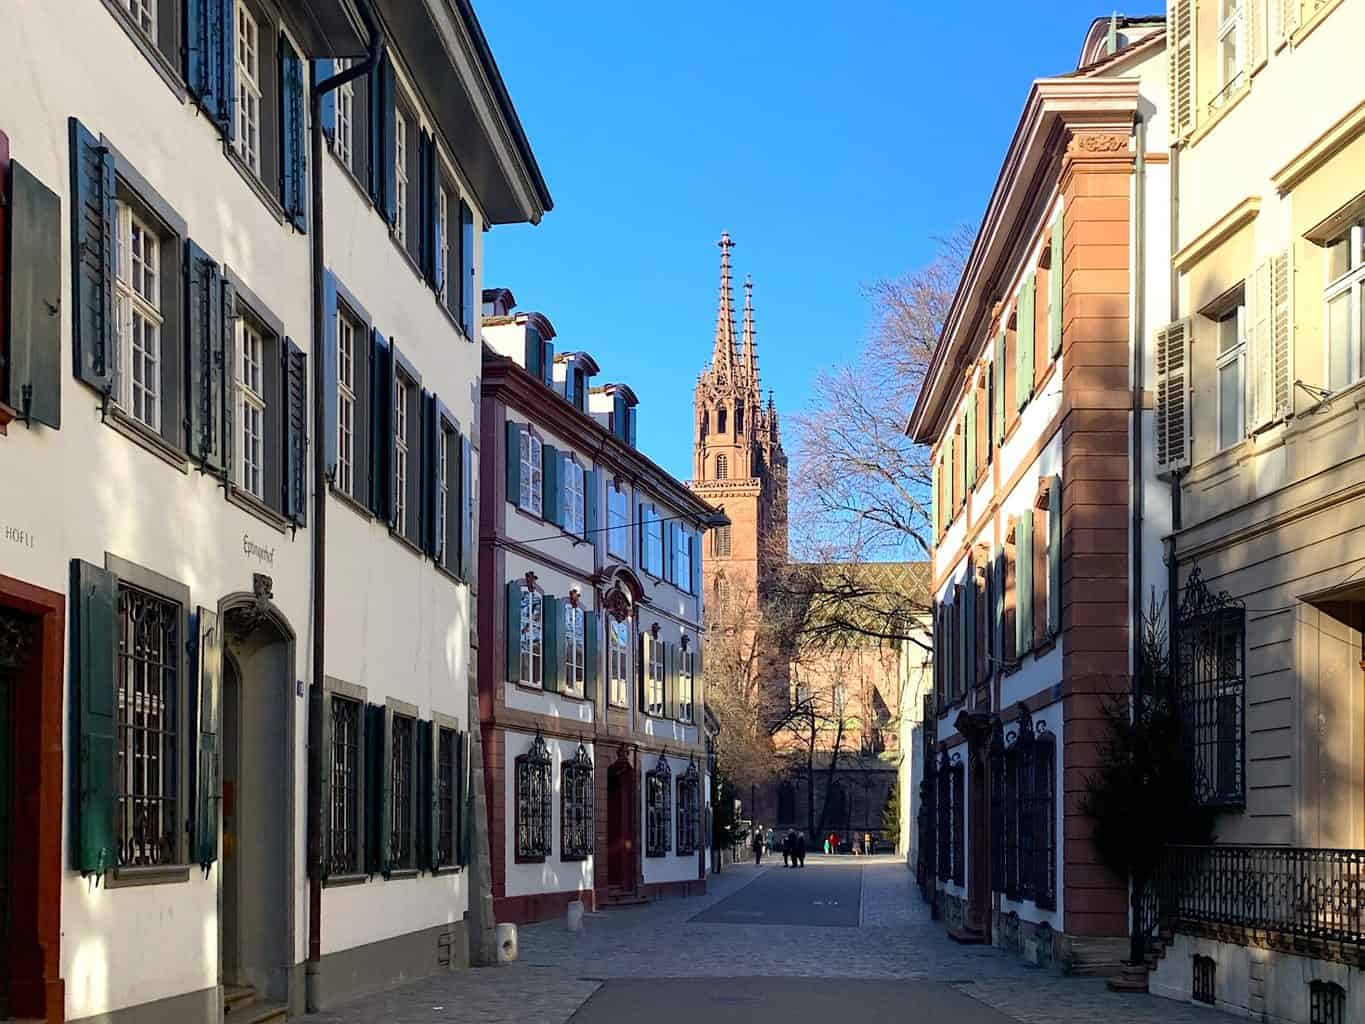 The picturesque streets of Basel, Switzerland.